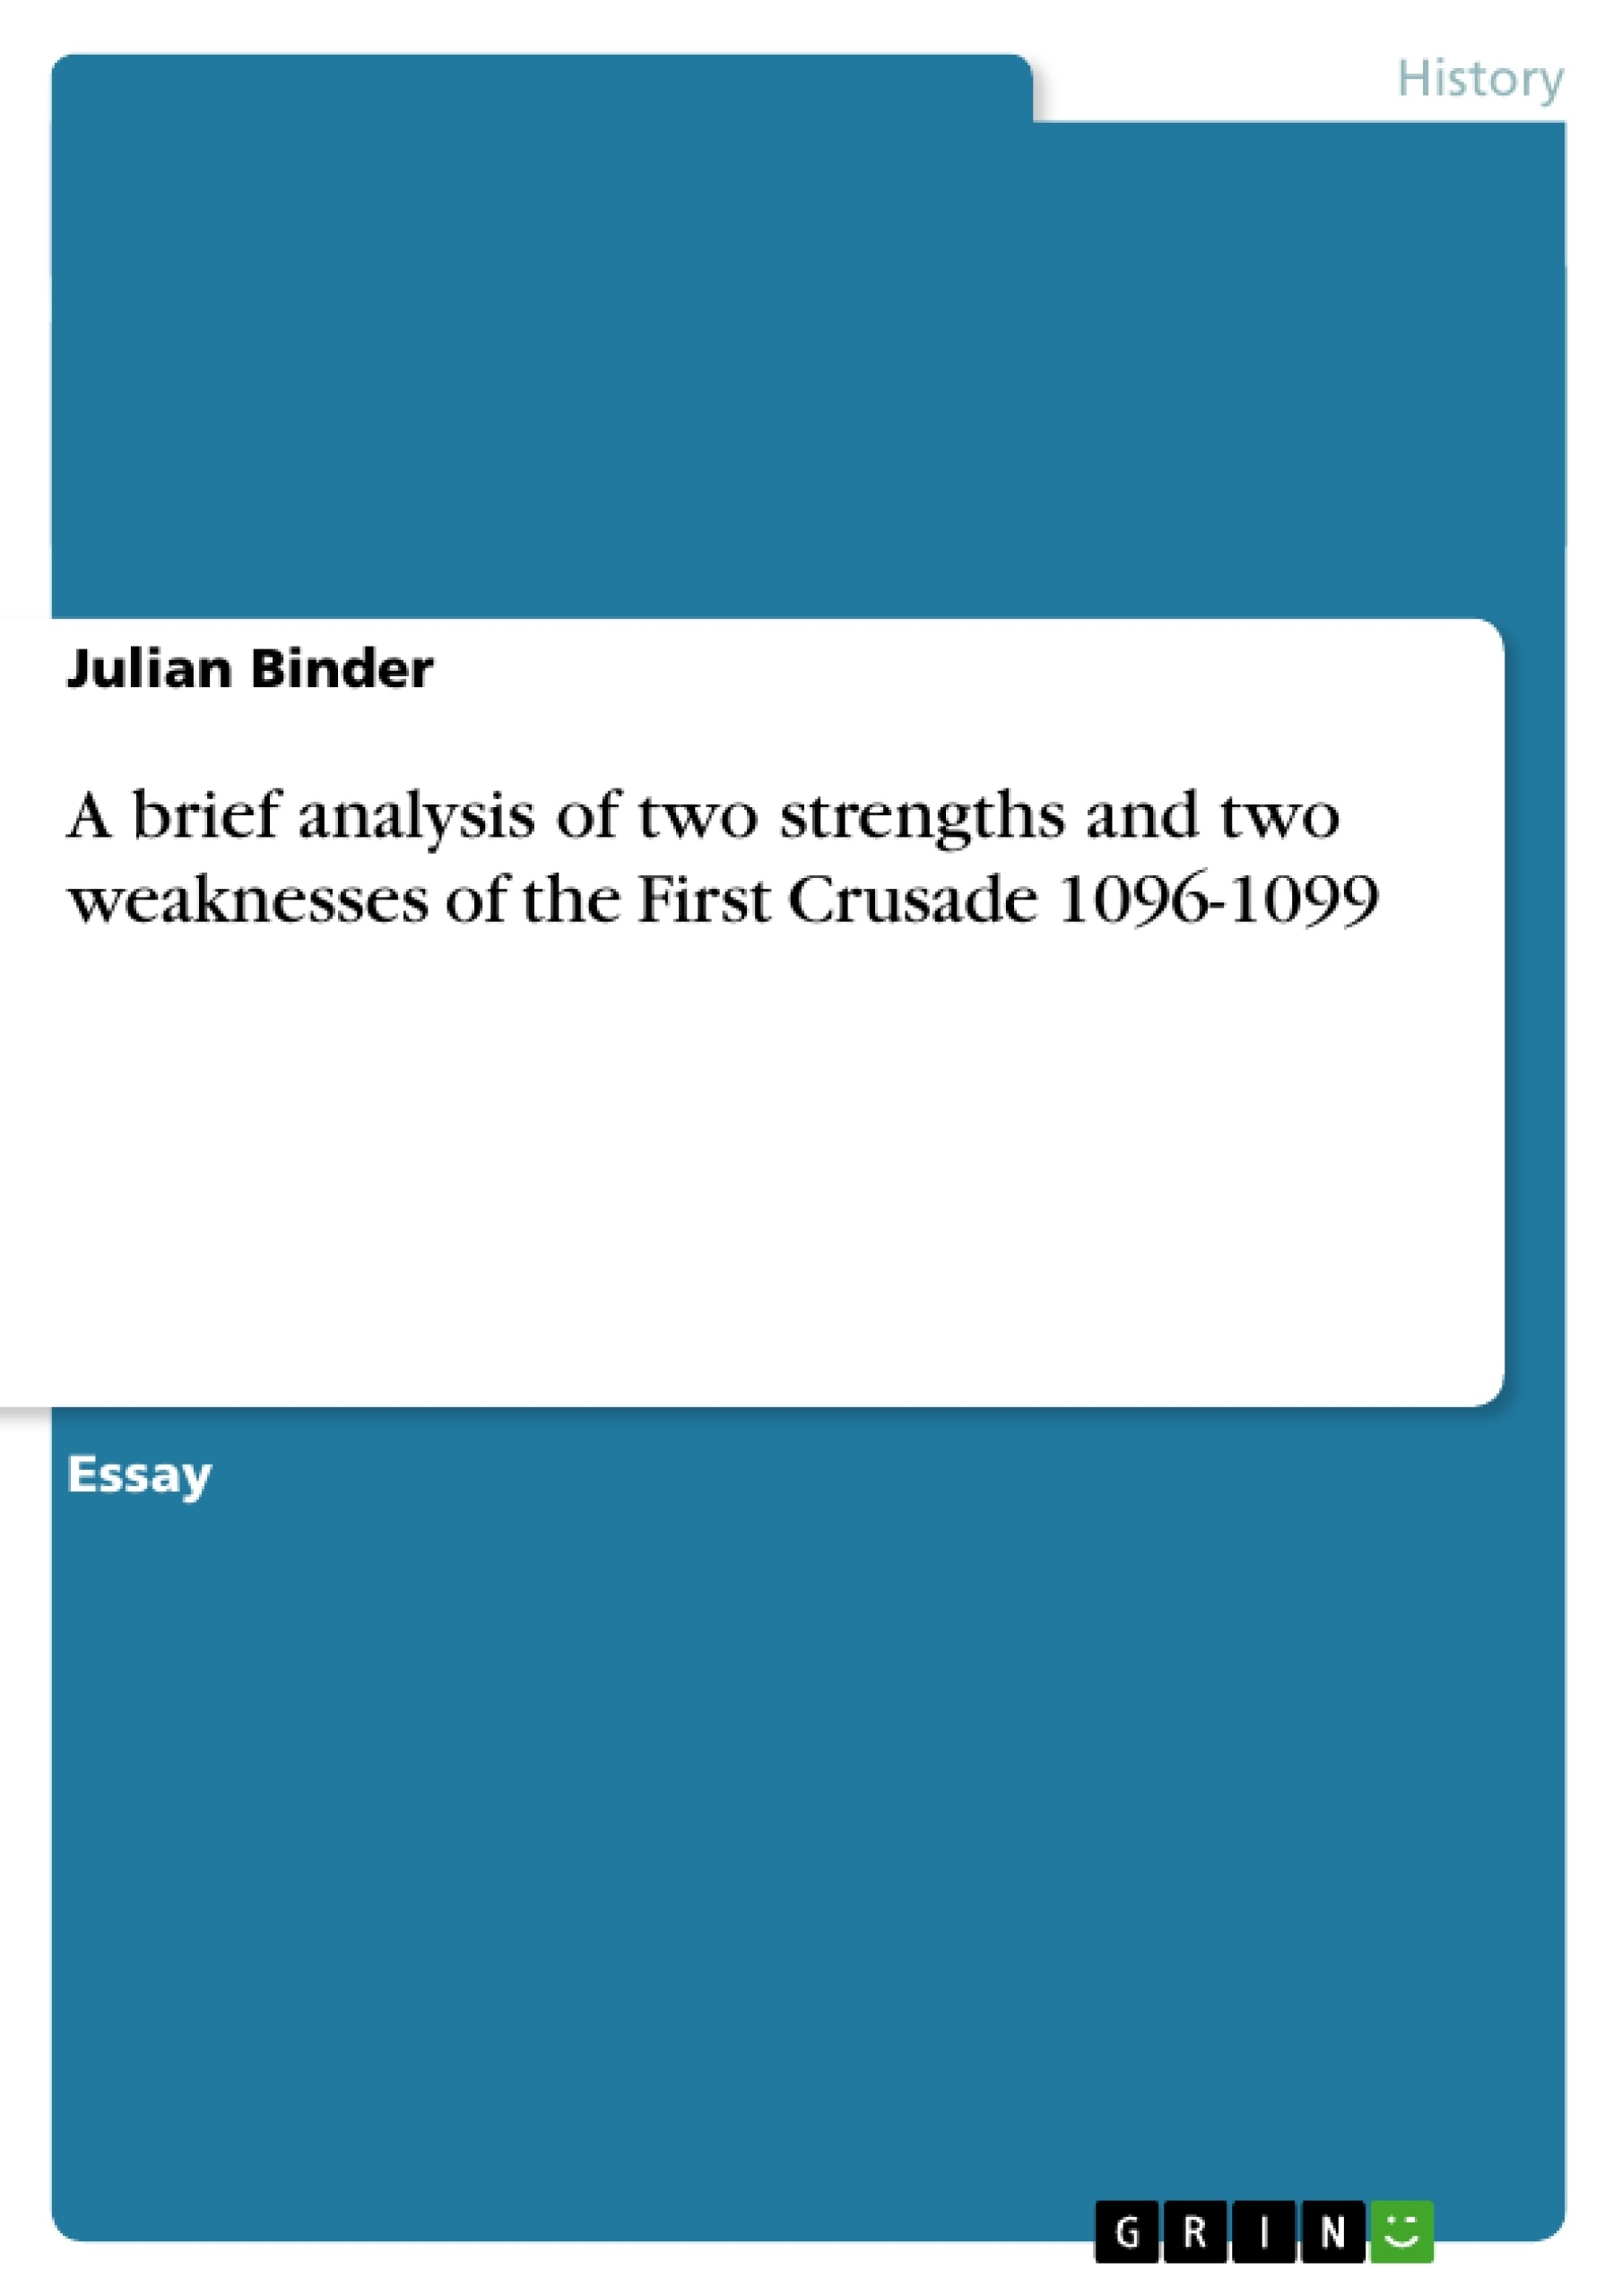 the failure of the crusades essay The failure of the second crusade and the fall of the christians the failure of the second crusade and the fall of the christians essay the crusades.